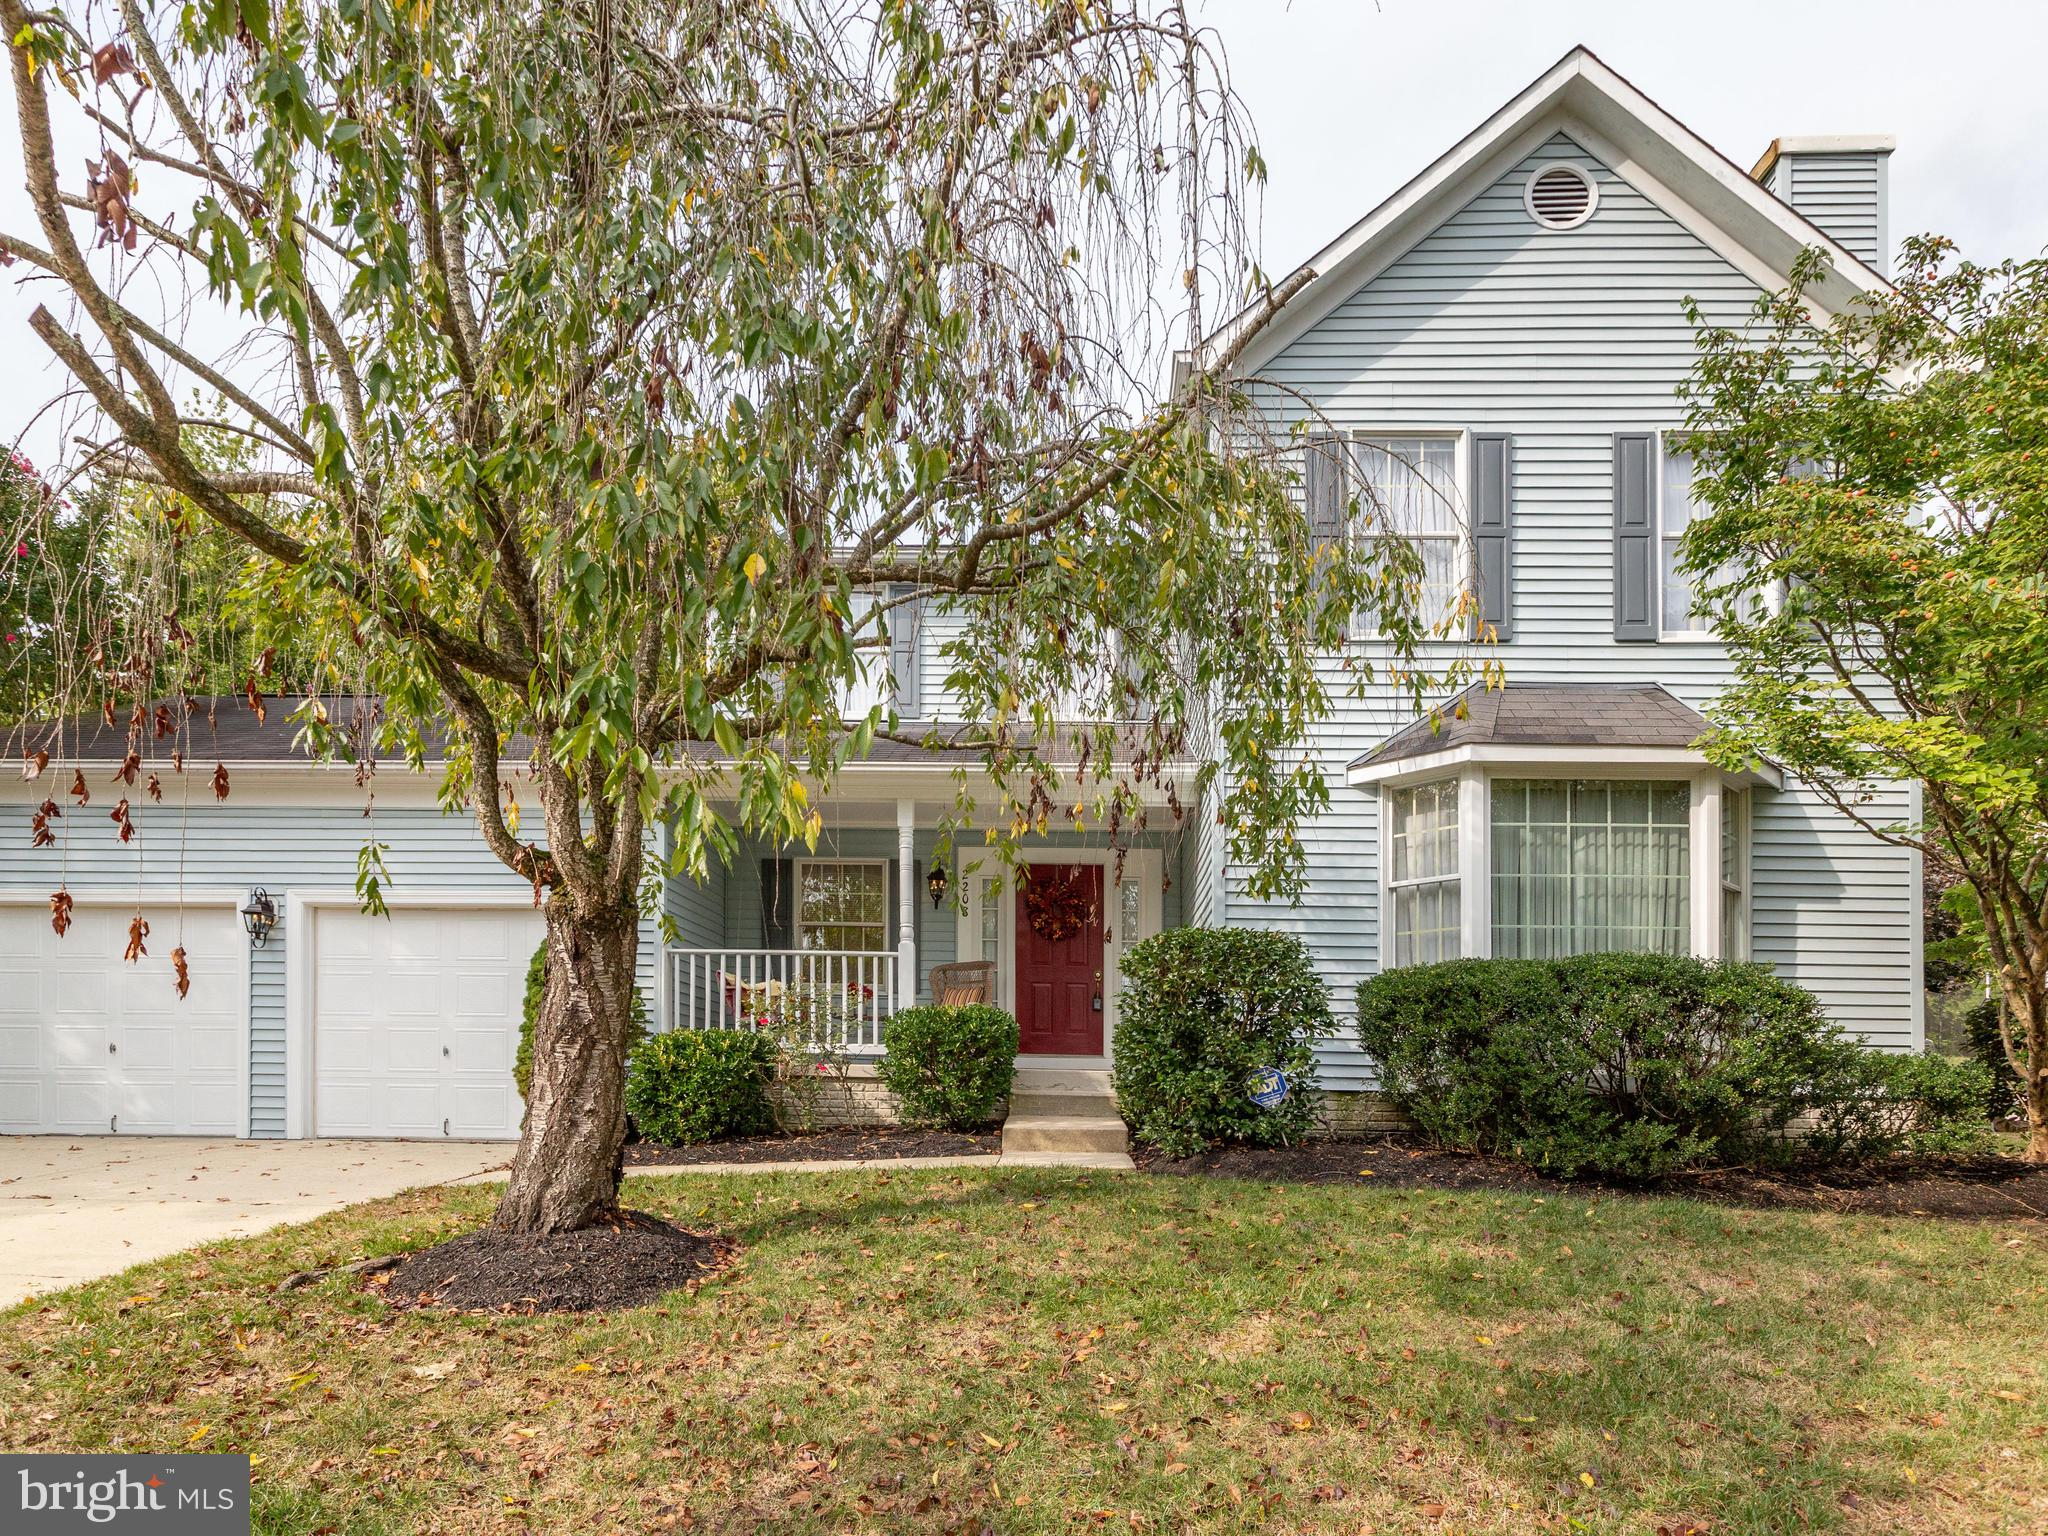 2208 AMBER MEADOWS DRIVE, BOWIE, MD 20716